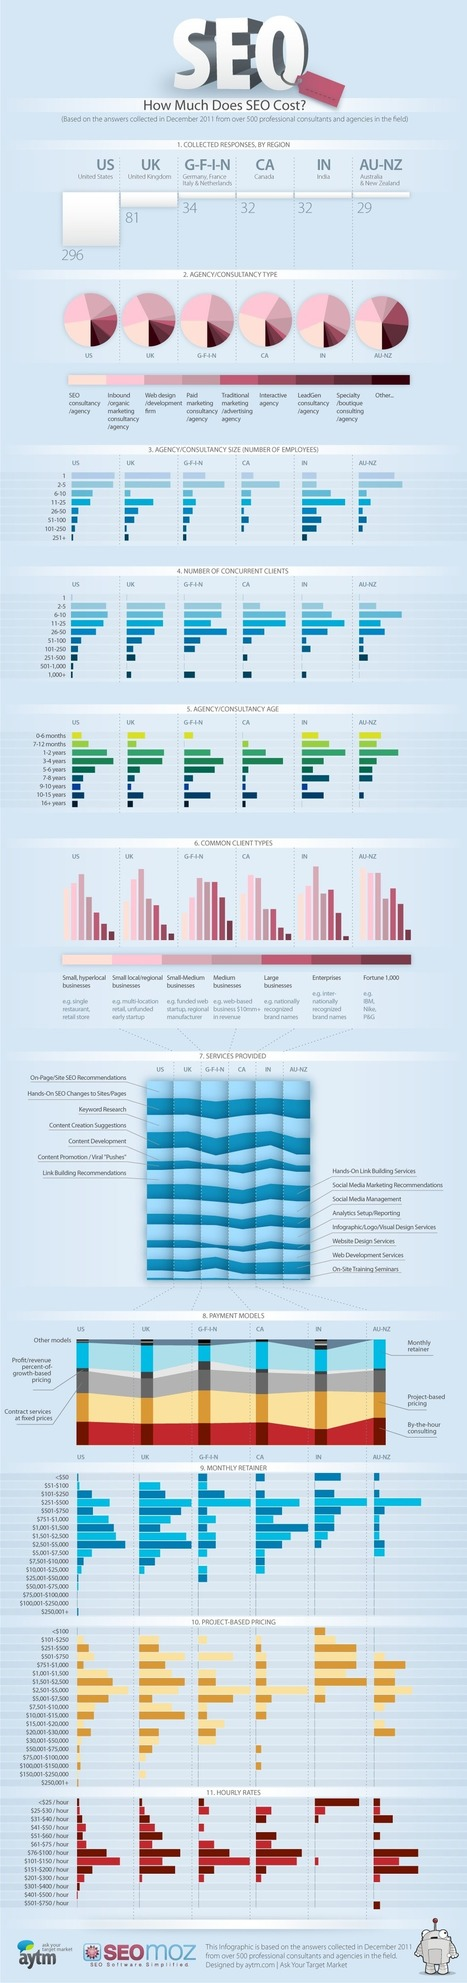 What Does SEO Cost? [Infographic] - Forbes | #TheMarketingAutomationAlert | ~Sharing is Caring~ | Scoop.it